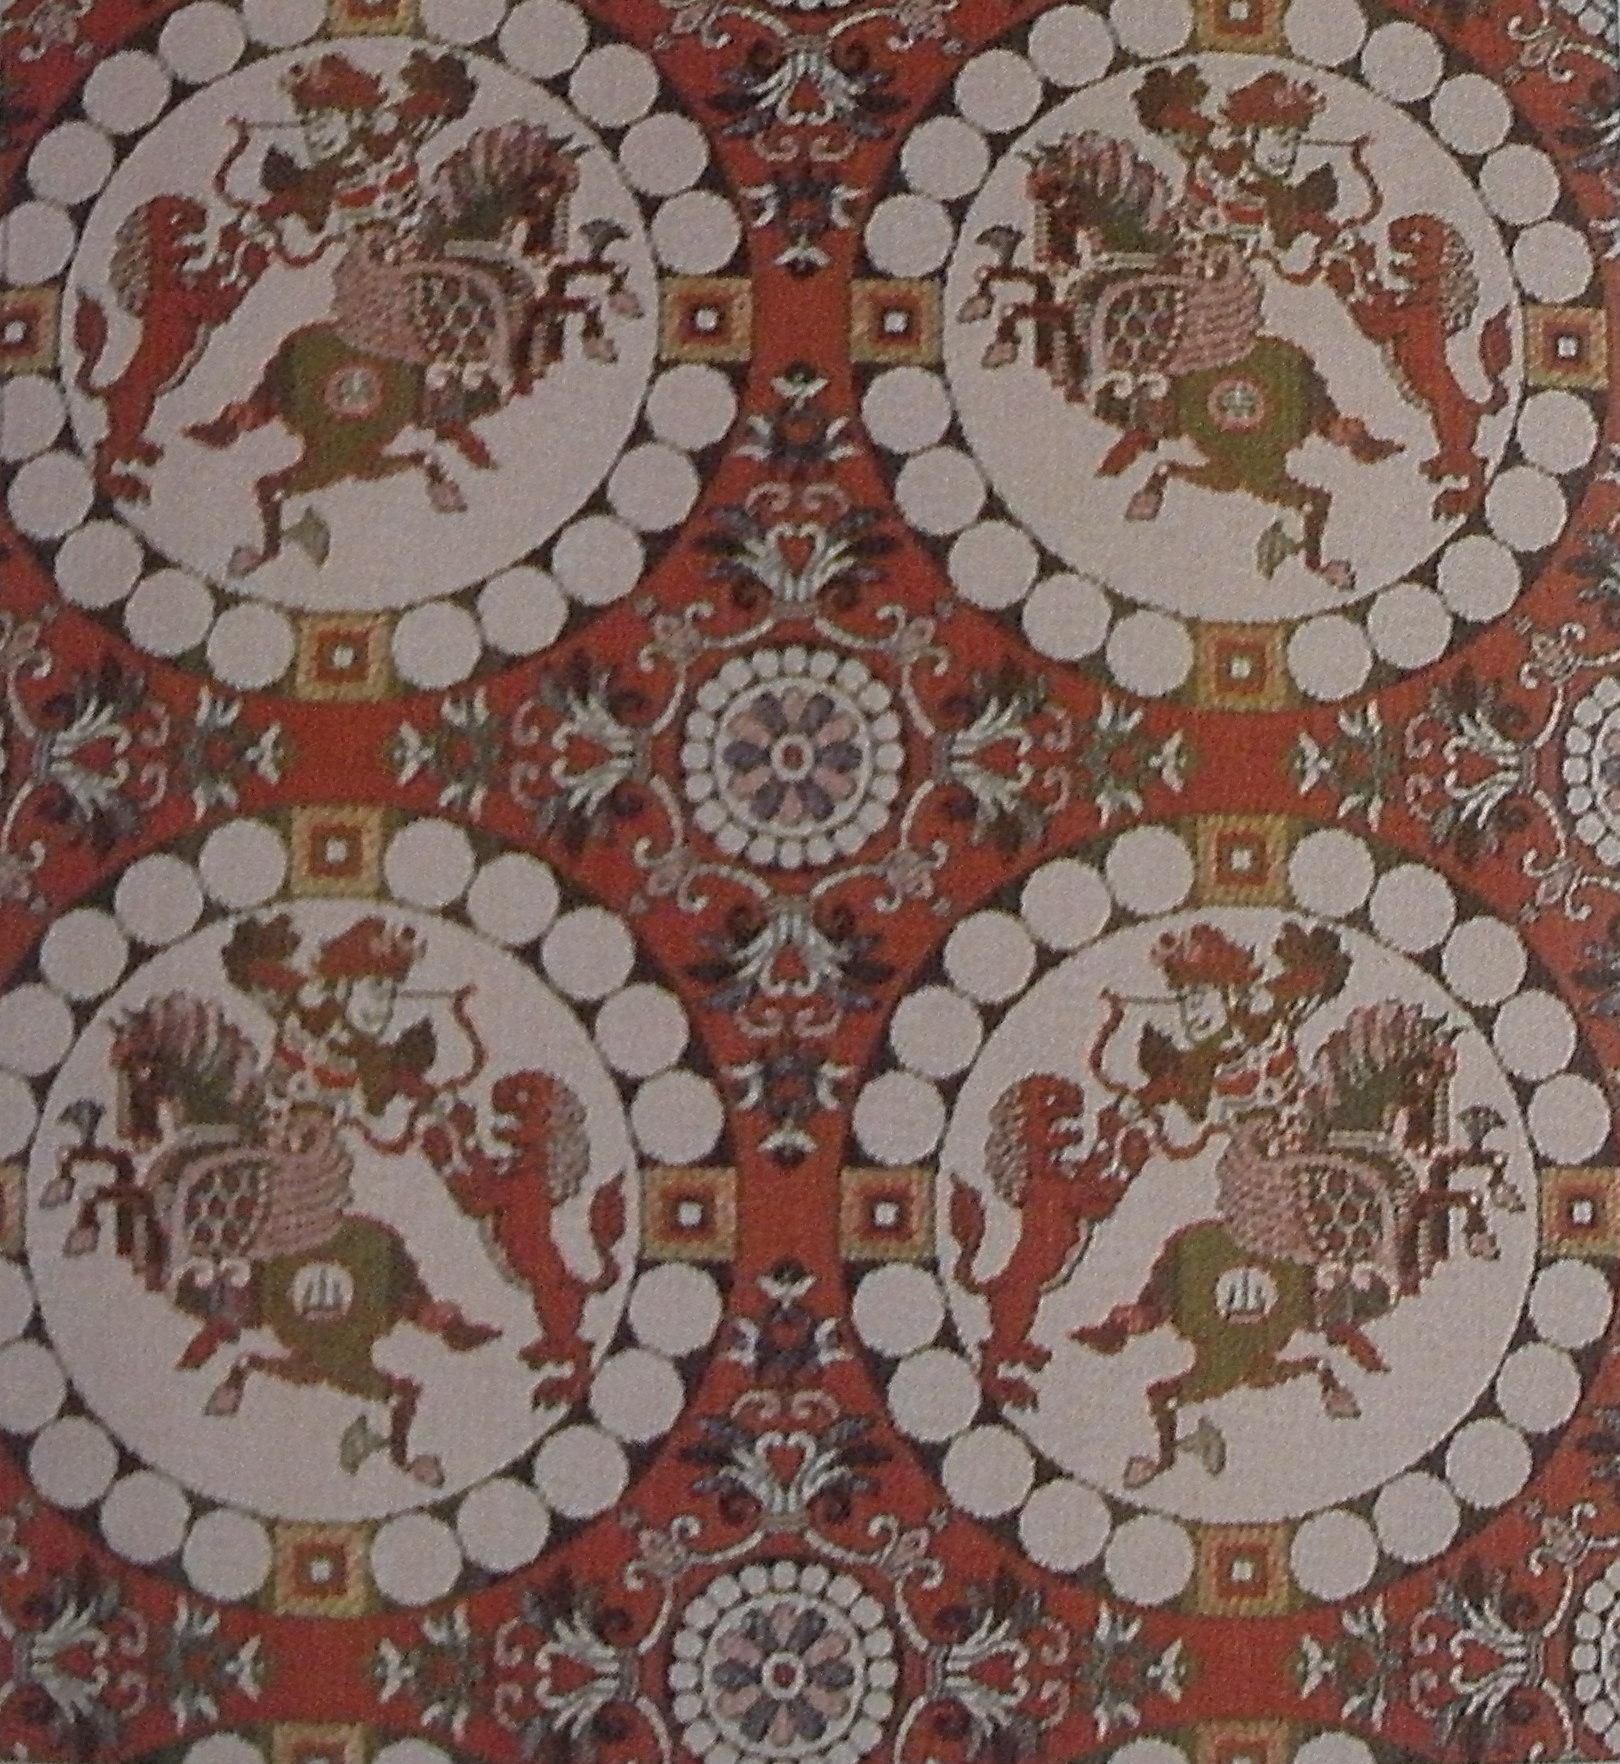 IT's not Oseberg silk, it's not even Persian silk! C6th–7thAD Silk twill textile, woven in Japan, imitating a Sasanian Persian original, from the Shoso-in Depository in Nara (established 754 AD).